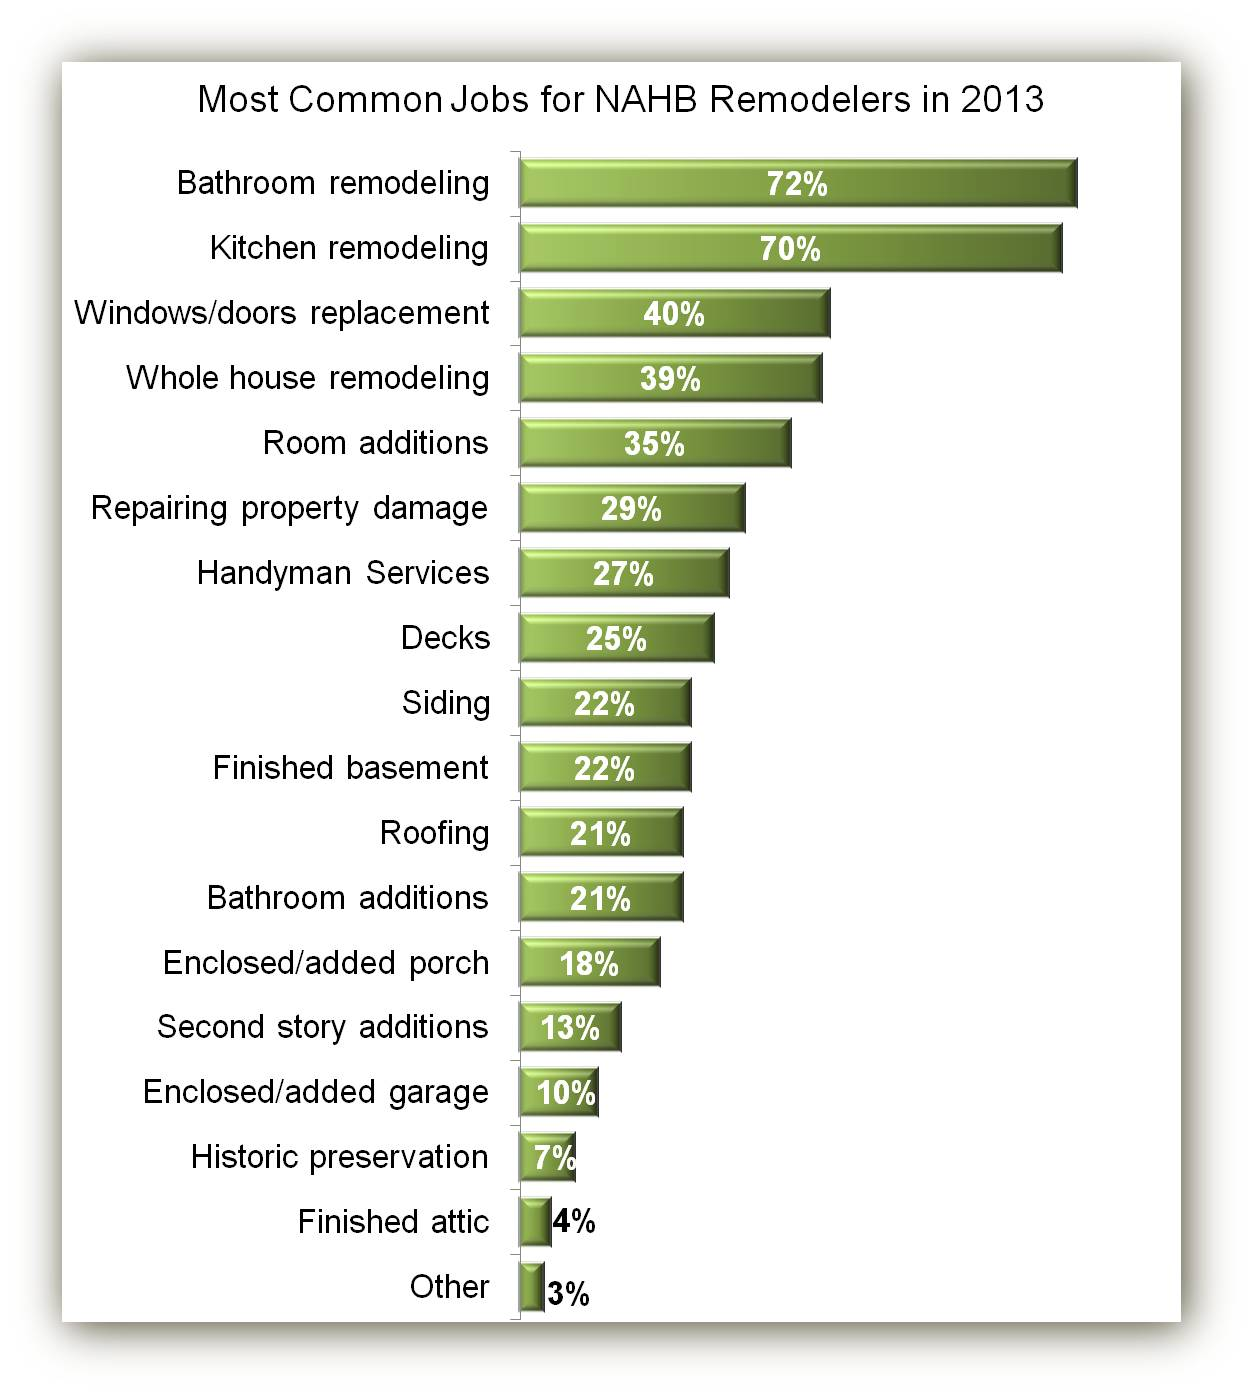 Remodeling Jobs in 2013